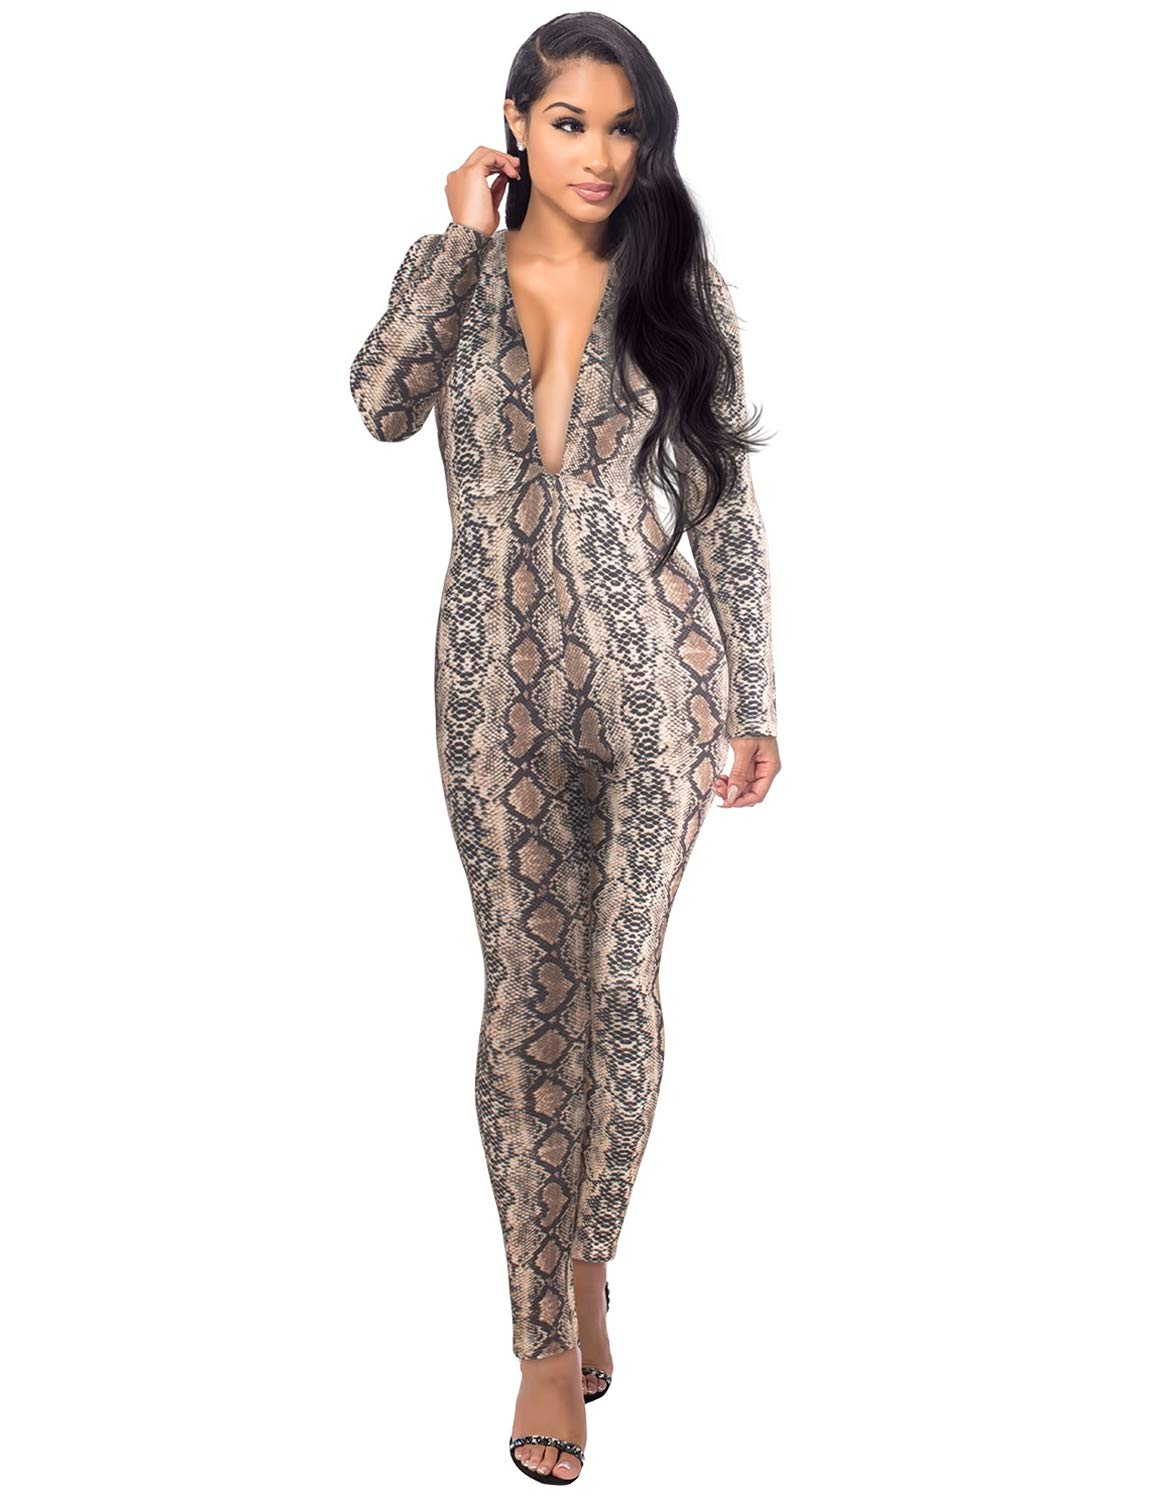 Sedrinuo Women Sexy Snakeskin Long Sleeve Deep V Neck Bodycon Club Jumpsuits